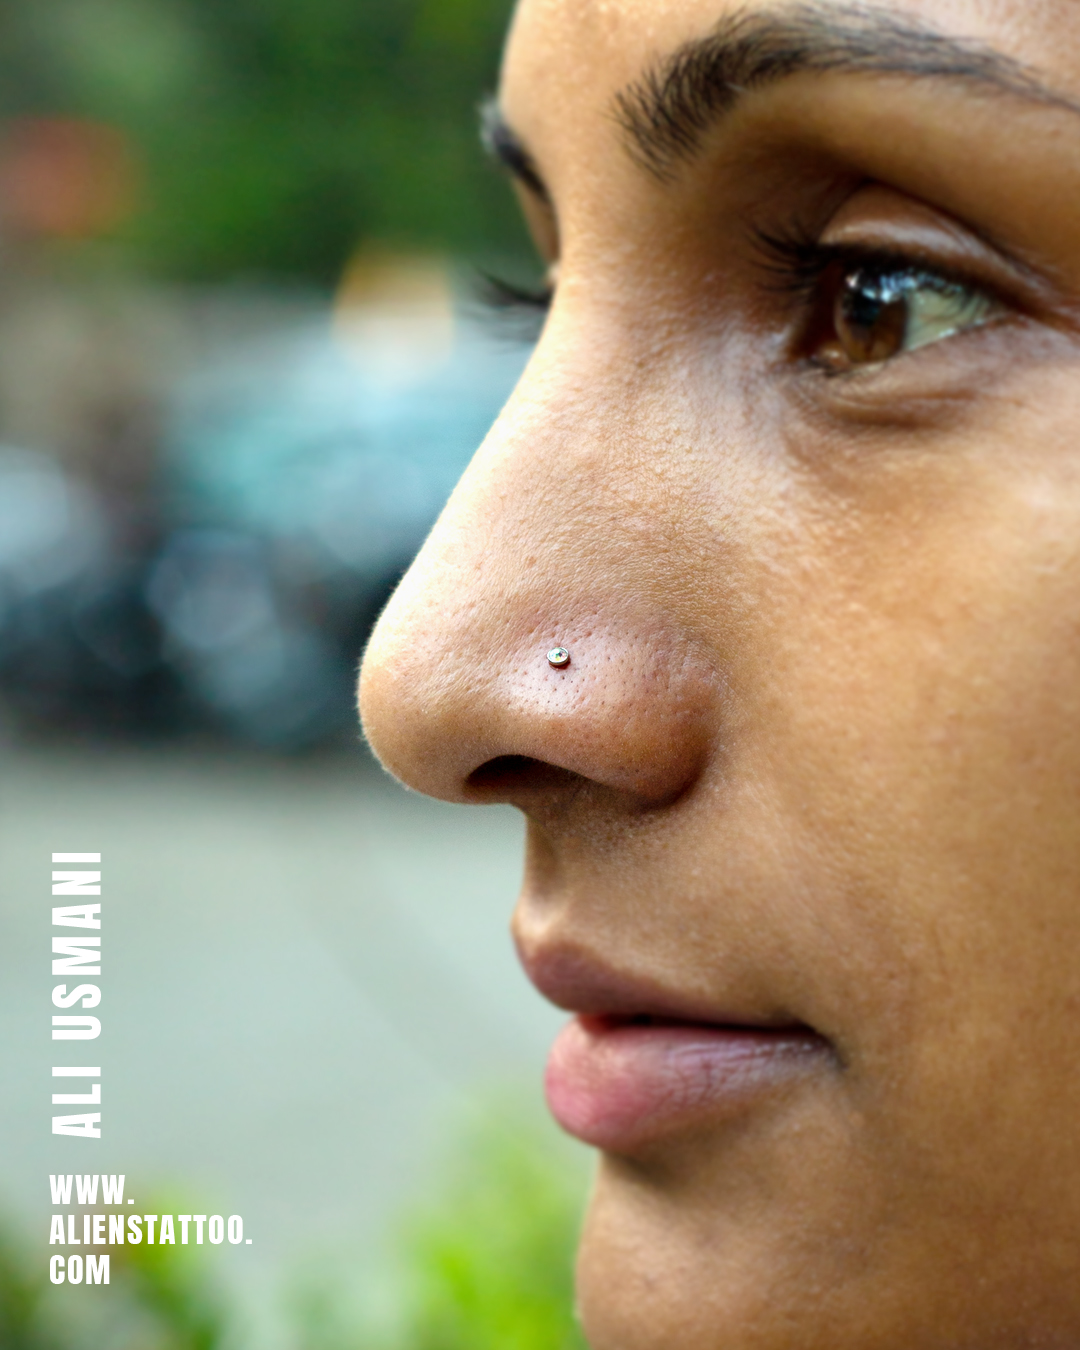 TRADITIONAL NOSE PIERCING